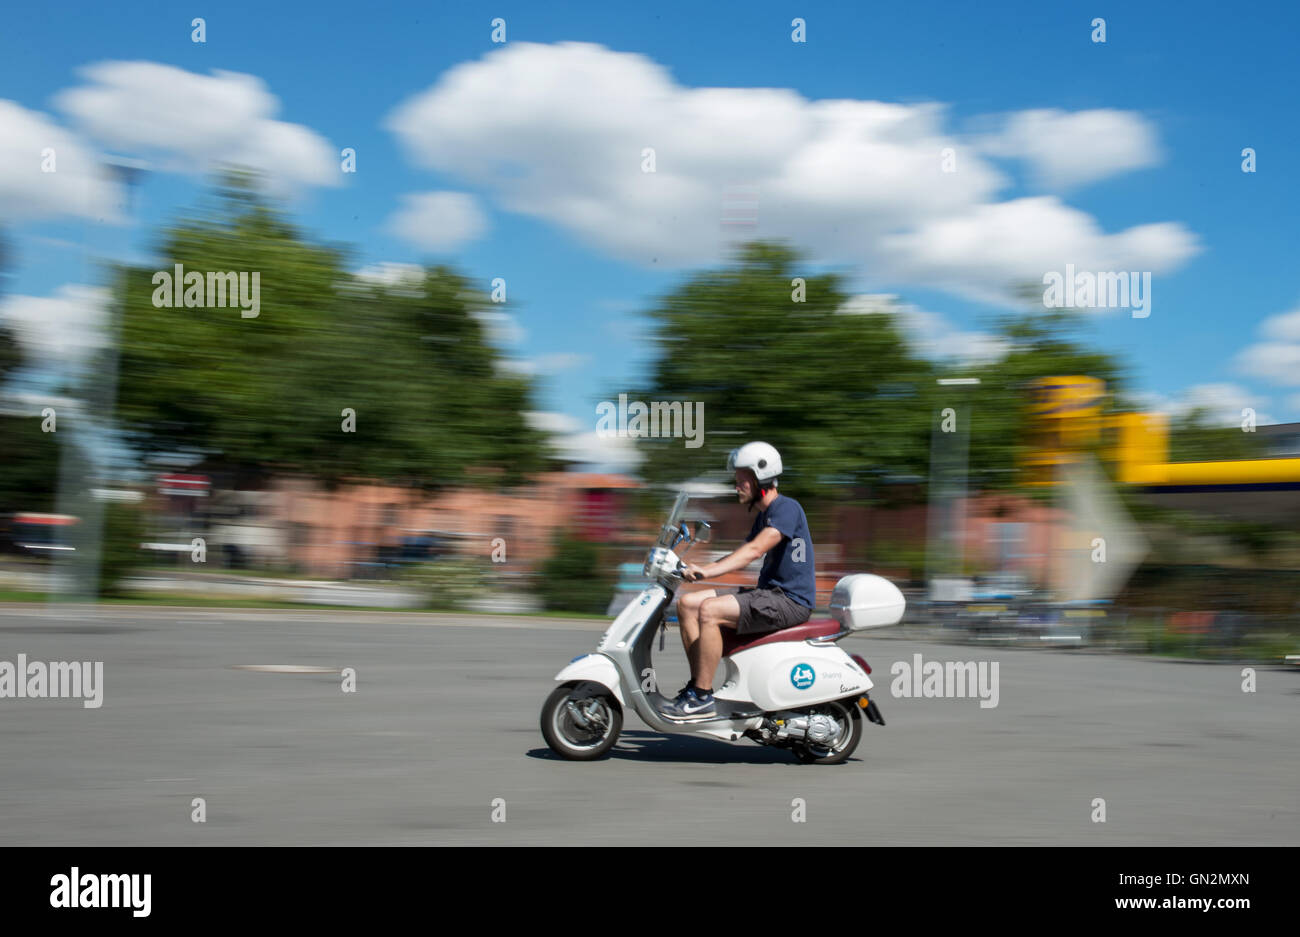 Hamburg Germany 19th Aug 2016 A Man Drives A Scooter By Scooter